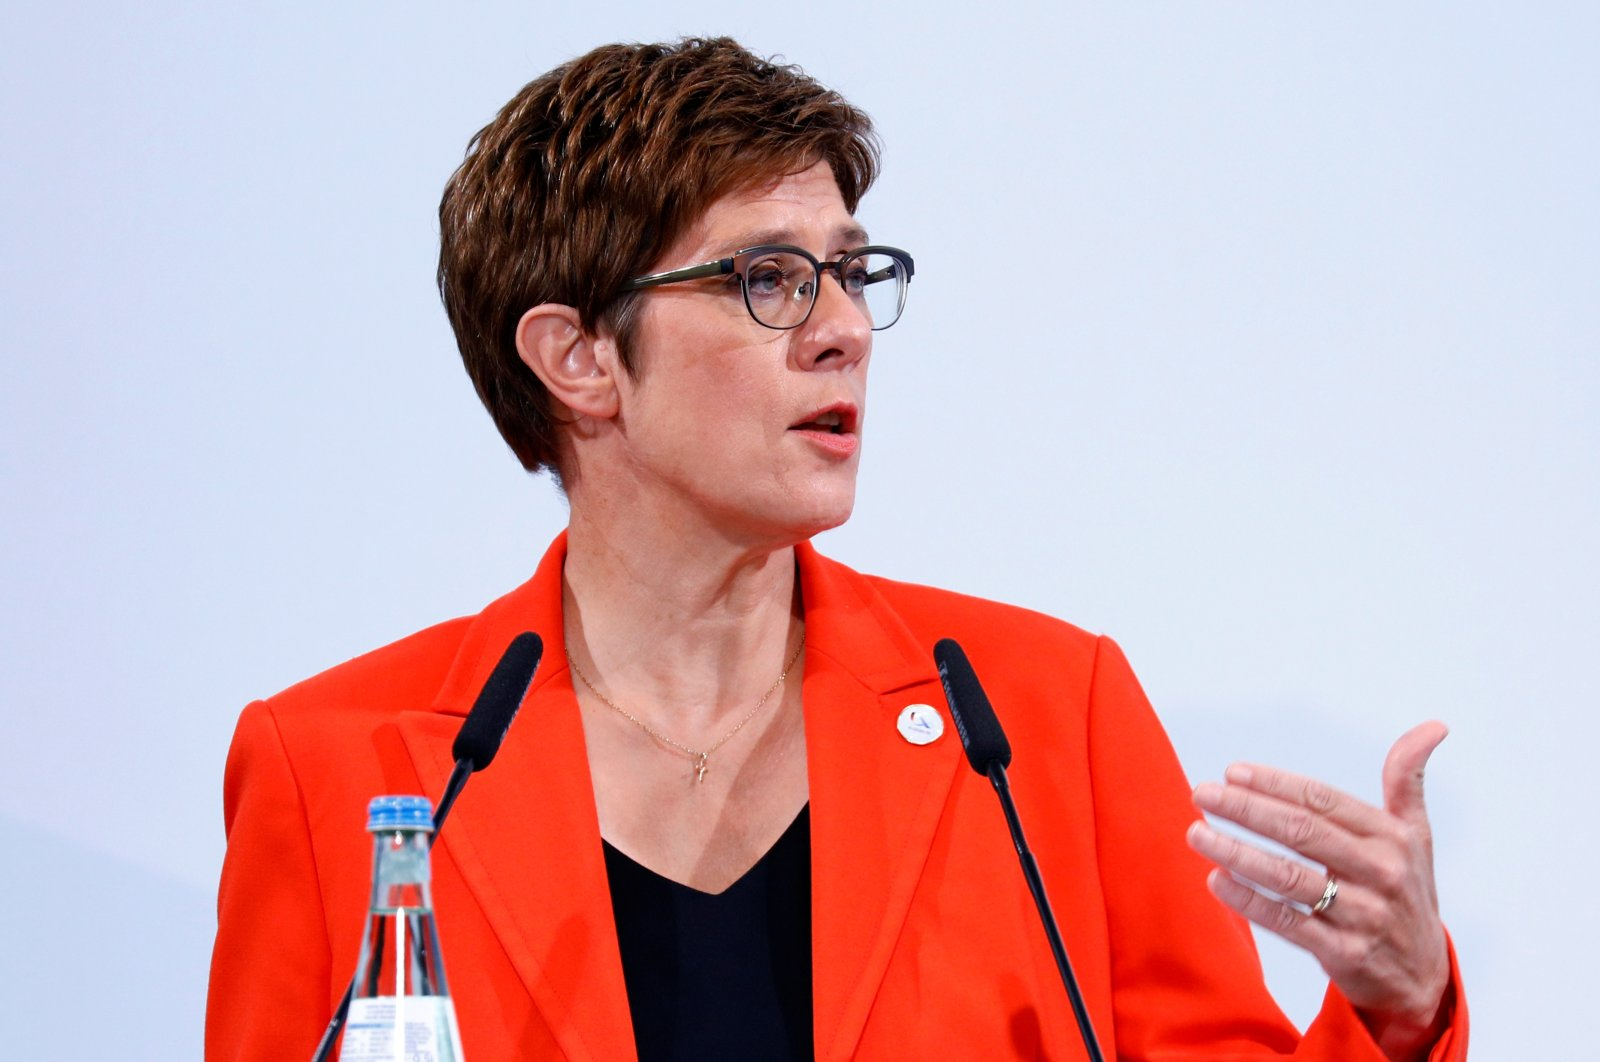 German Defence Minister Annegret Kramp-Karrenbauer holds a joint news conference with Josep Borrell, EU High Representative for Foreign Affairs and Security Policy, after a meeting with the European Union's defense ministers, in Berlin, Aug. 26, 2020. (REUTERS)